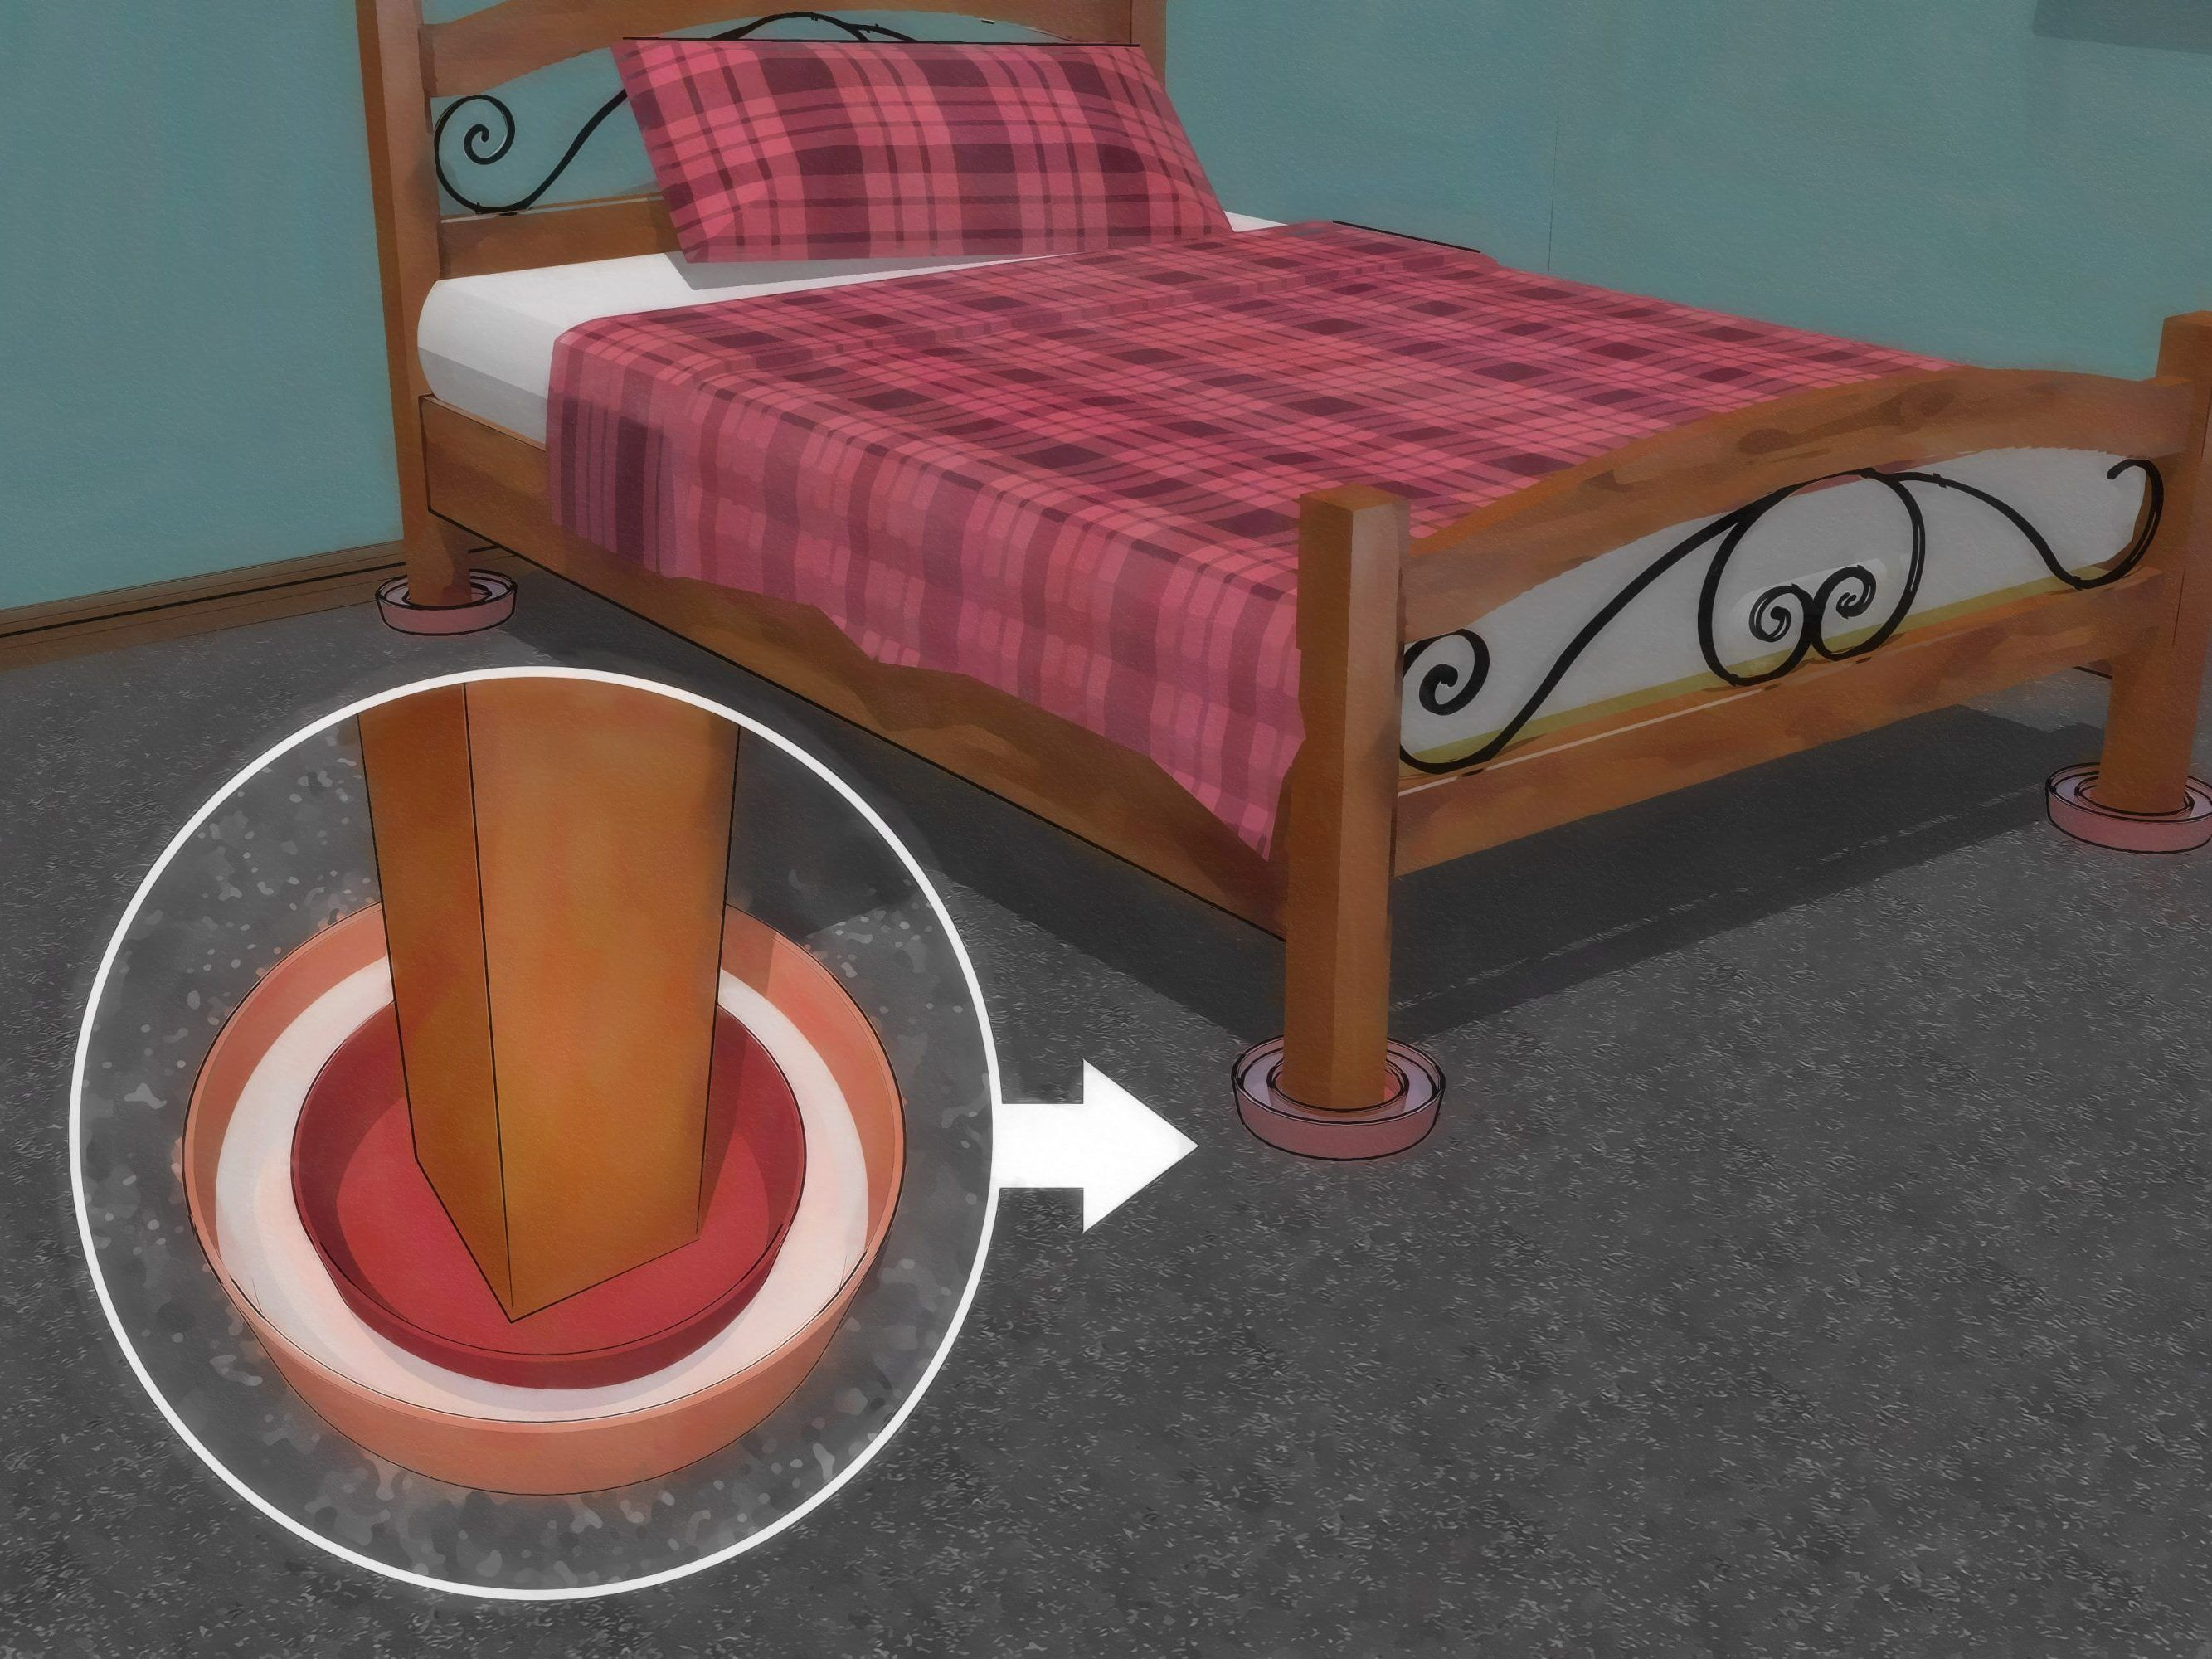 How to Get Rid of Bed Bug in Very Simple Steps Rid of